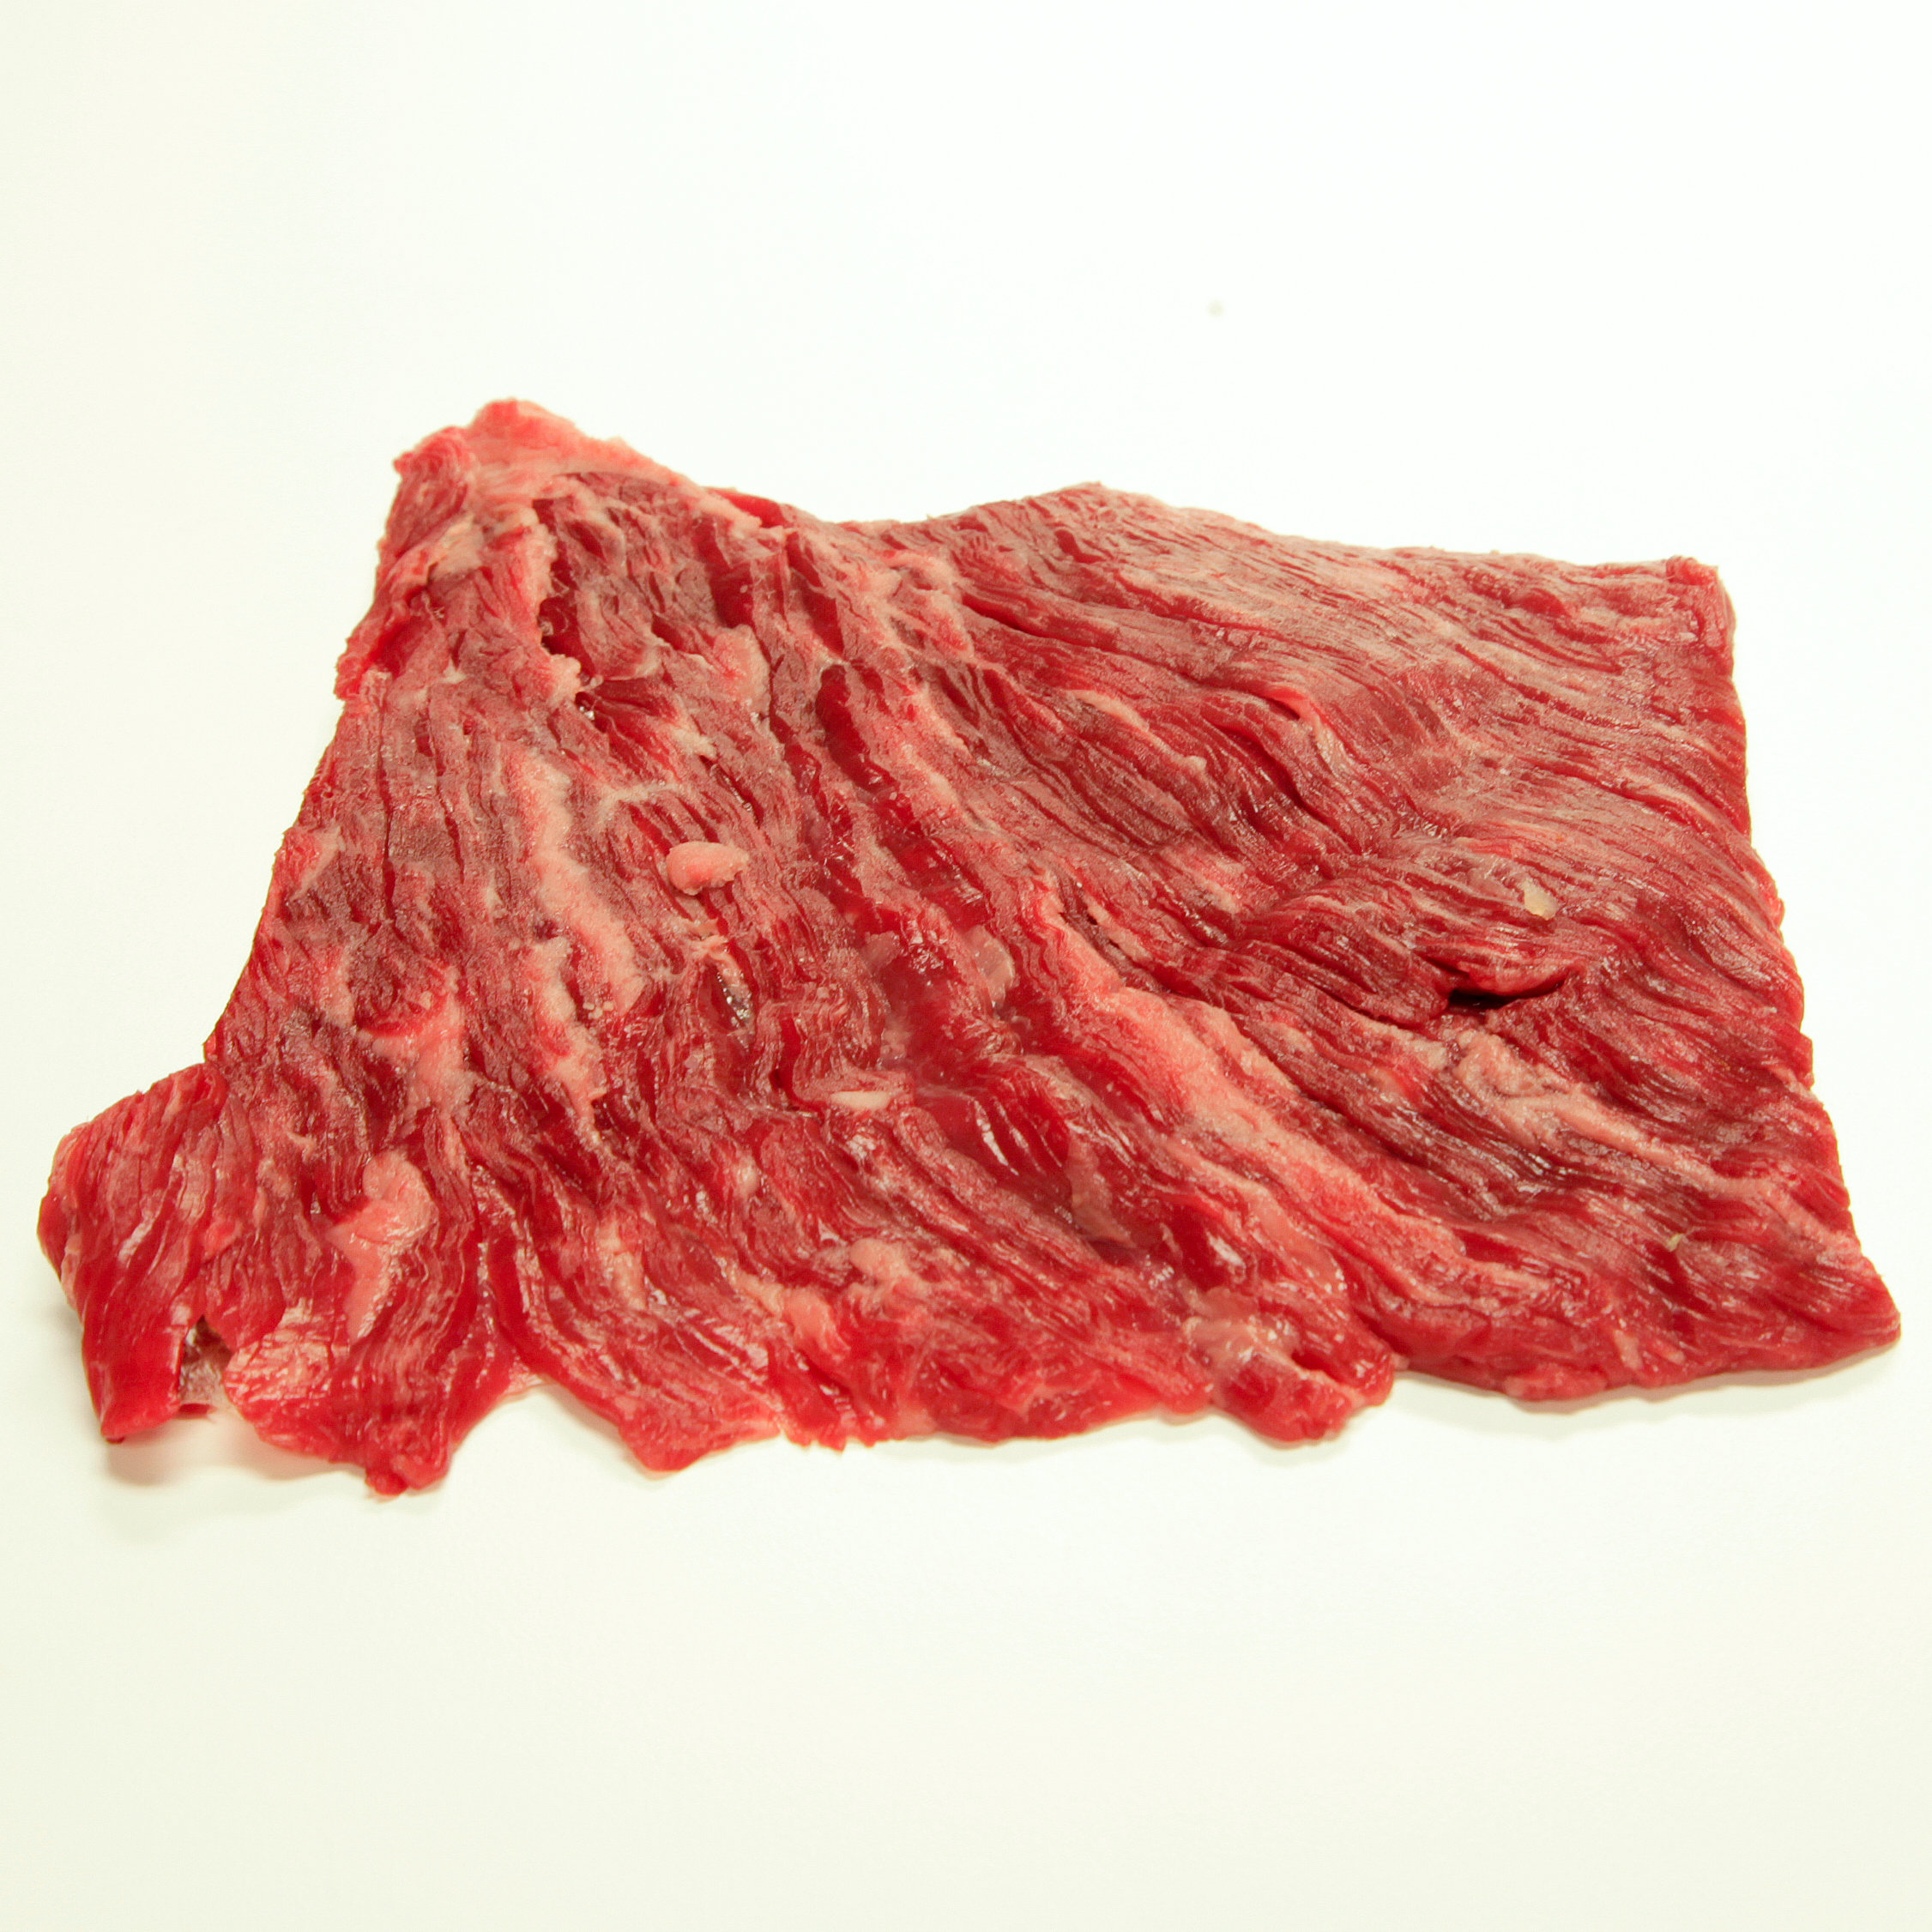 Harris Ranch, Black Angus Skirt Steak, 8 oz. 00093